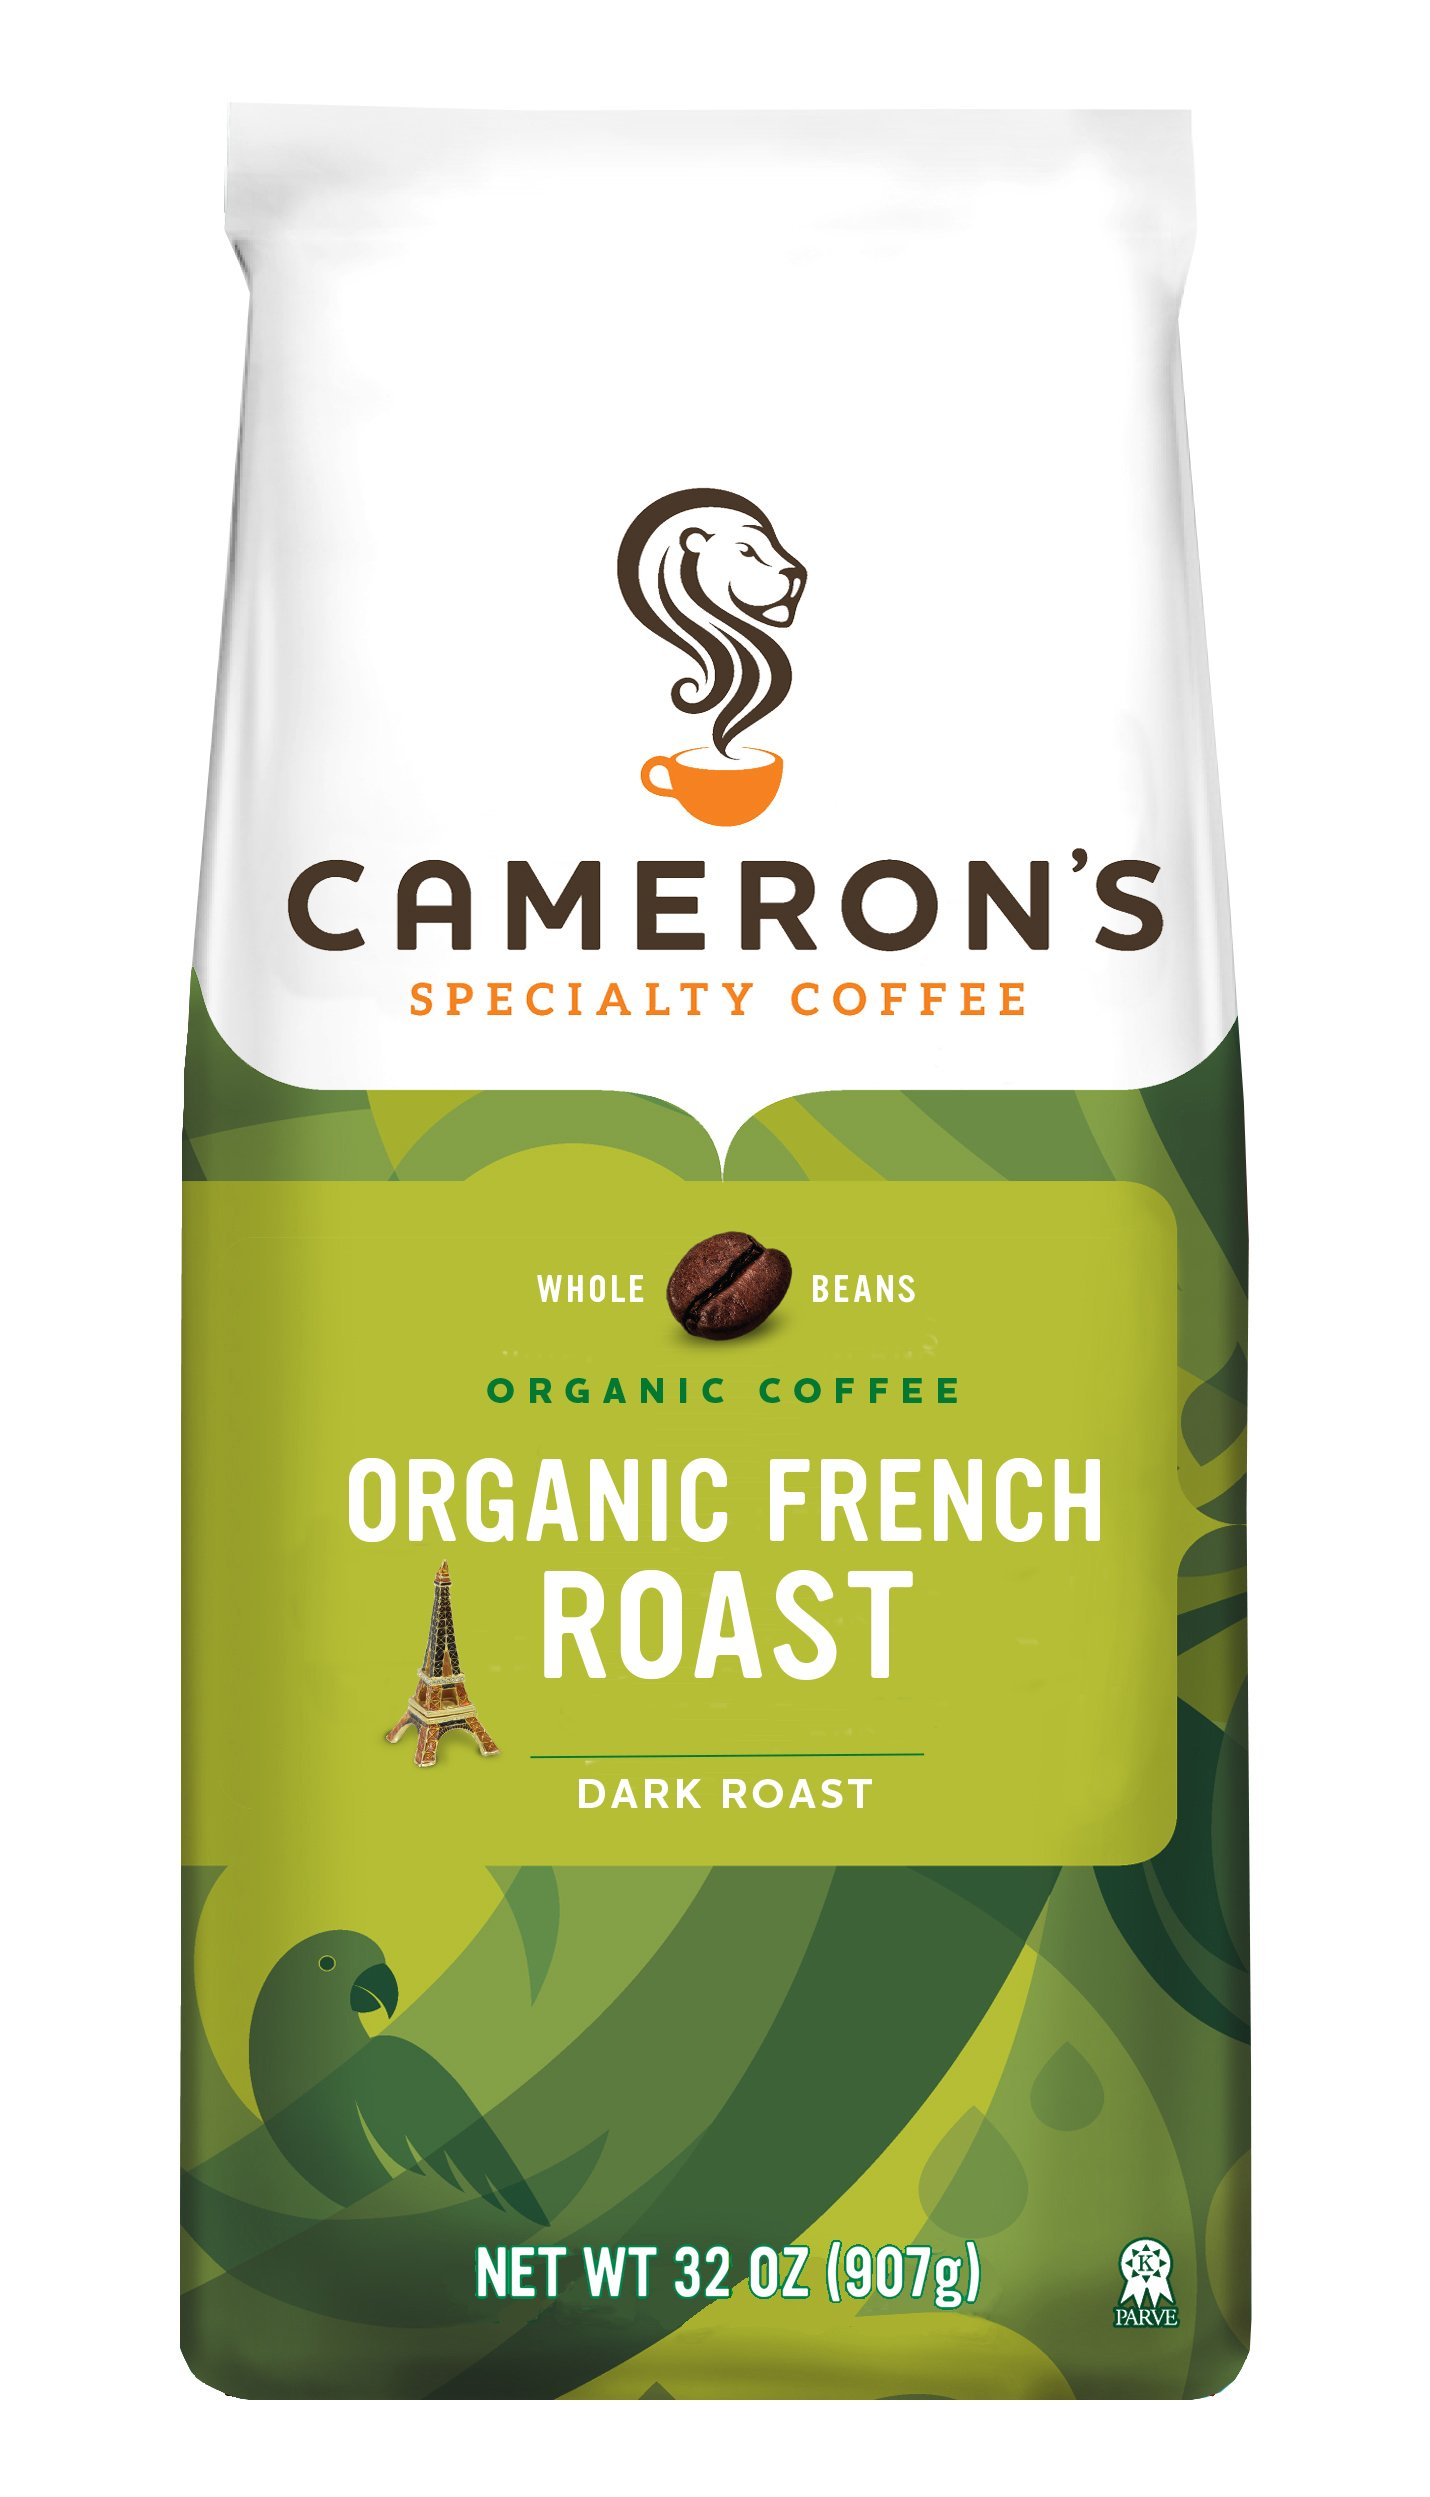 Cameron's Organic Whole Bean Coffee